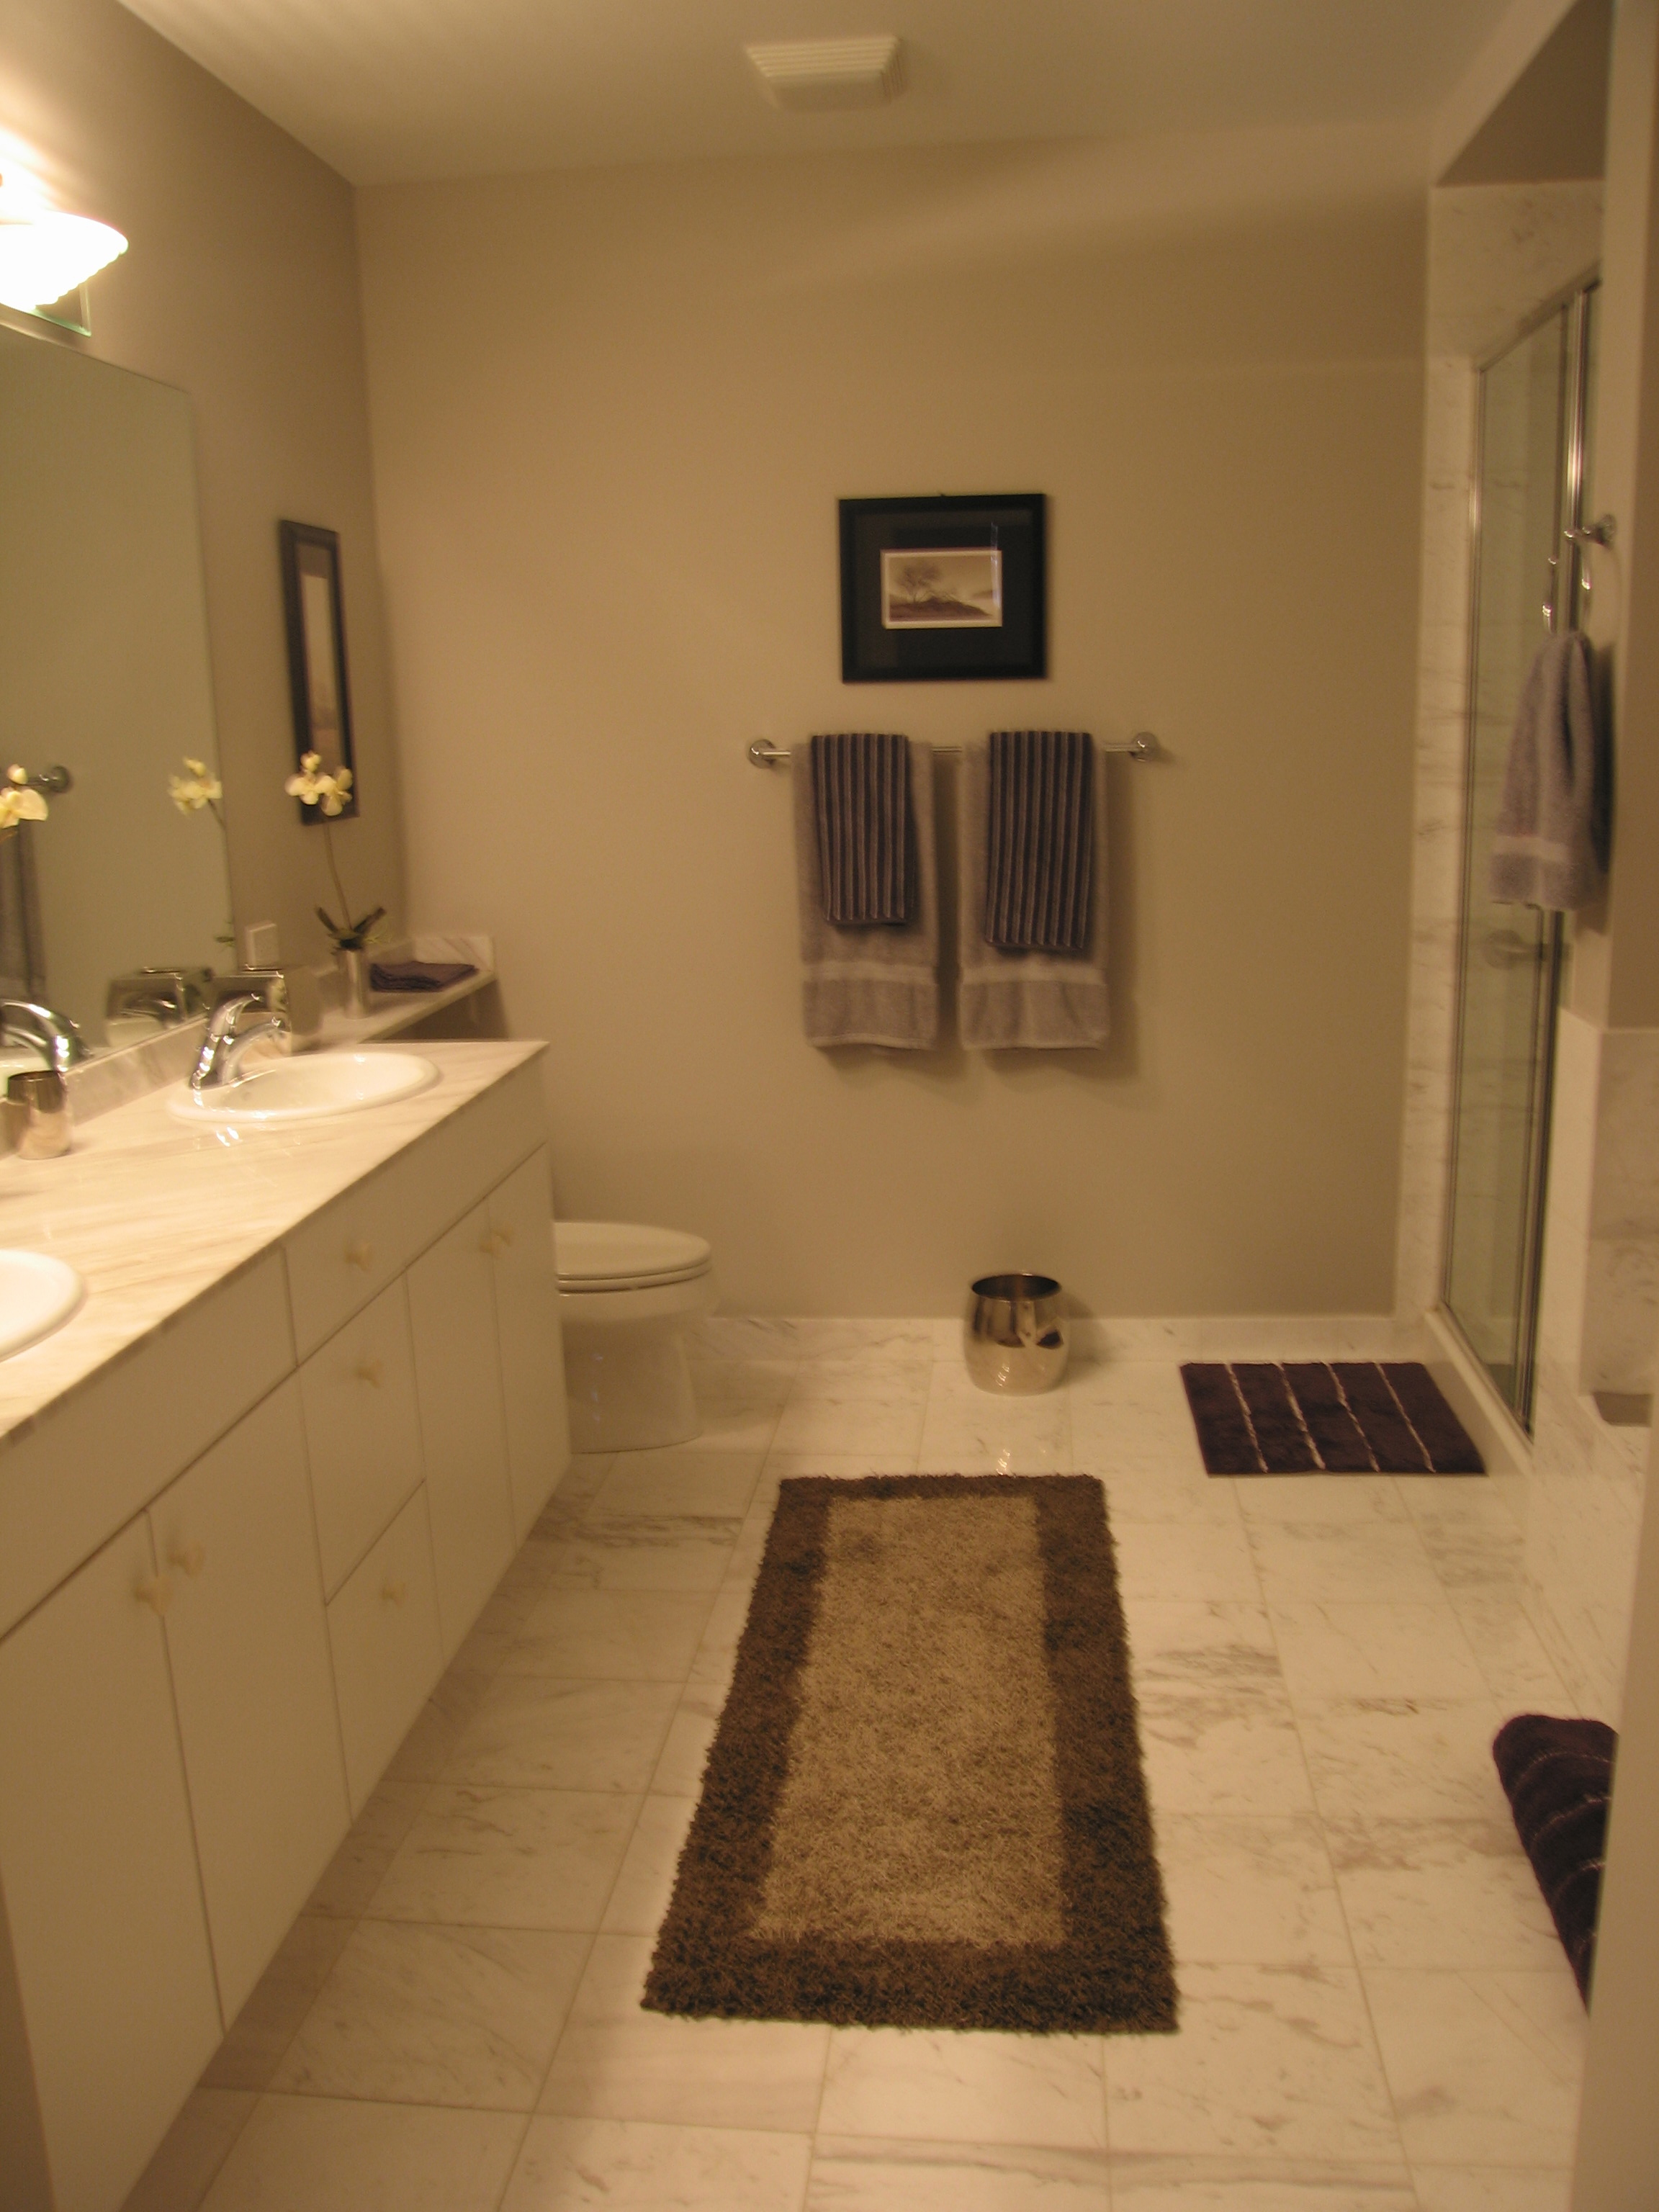 Lincoln Park Condo Bathroom (Ater Staging)